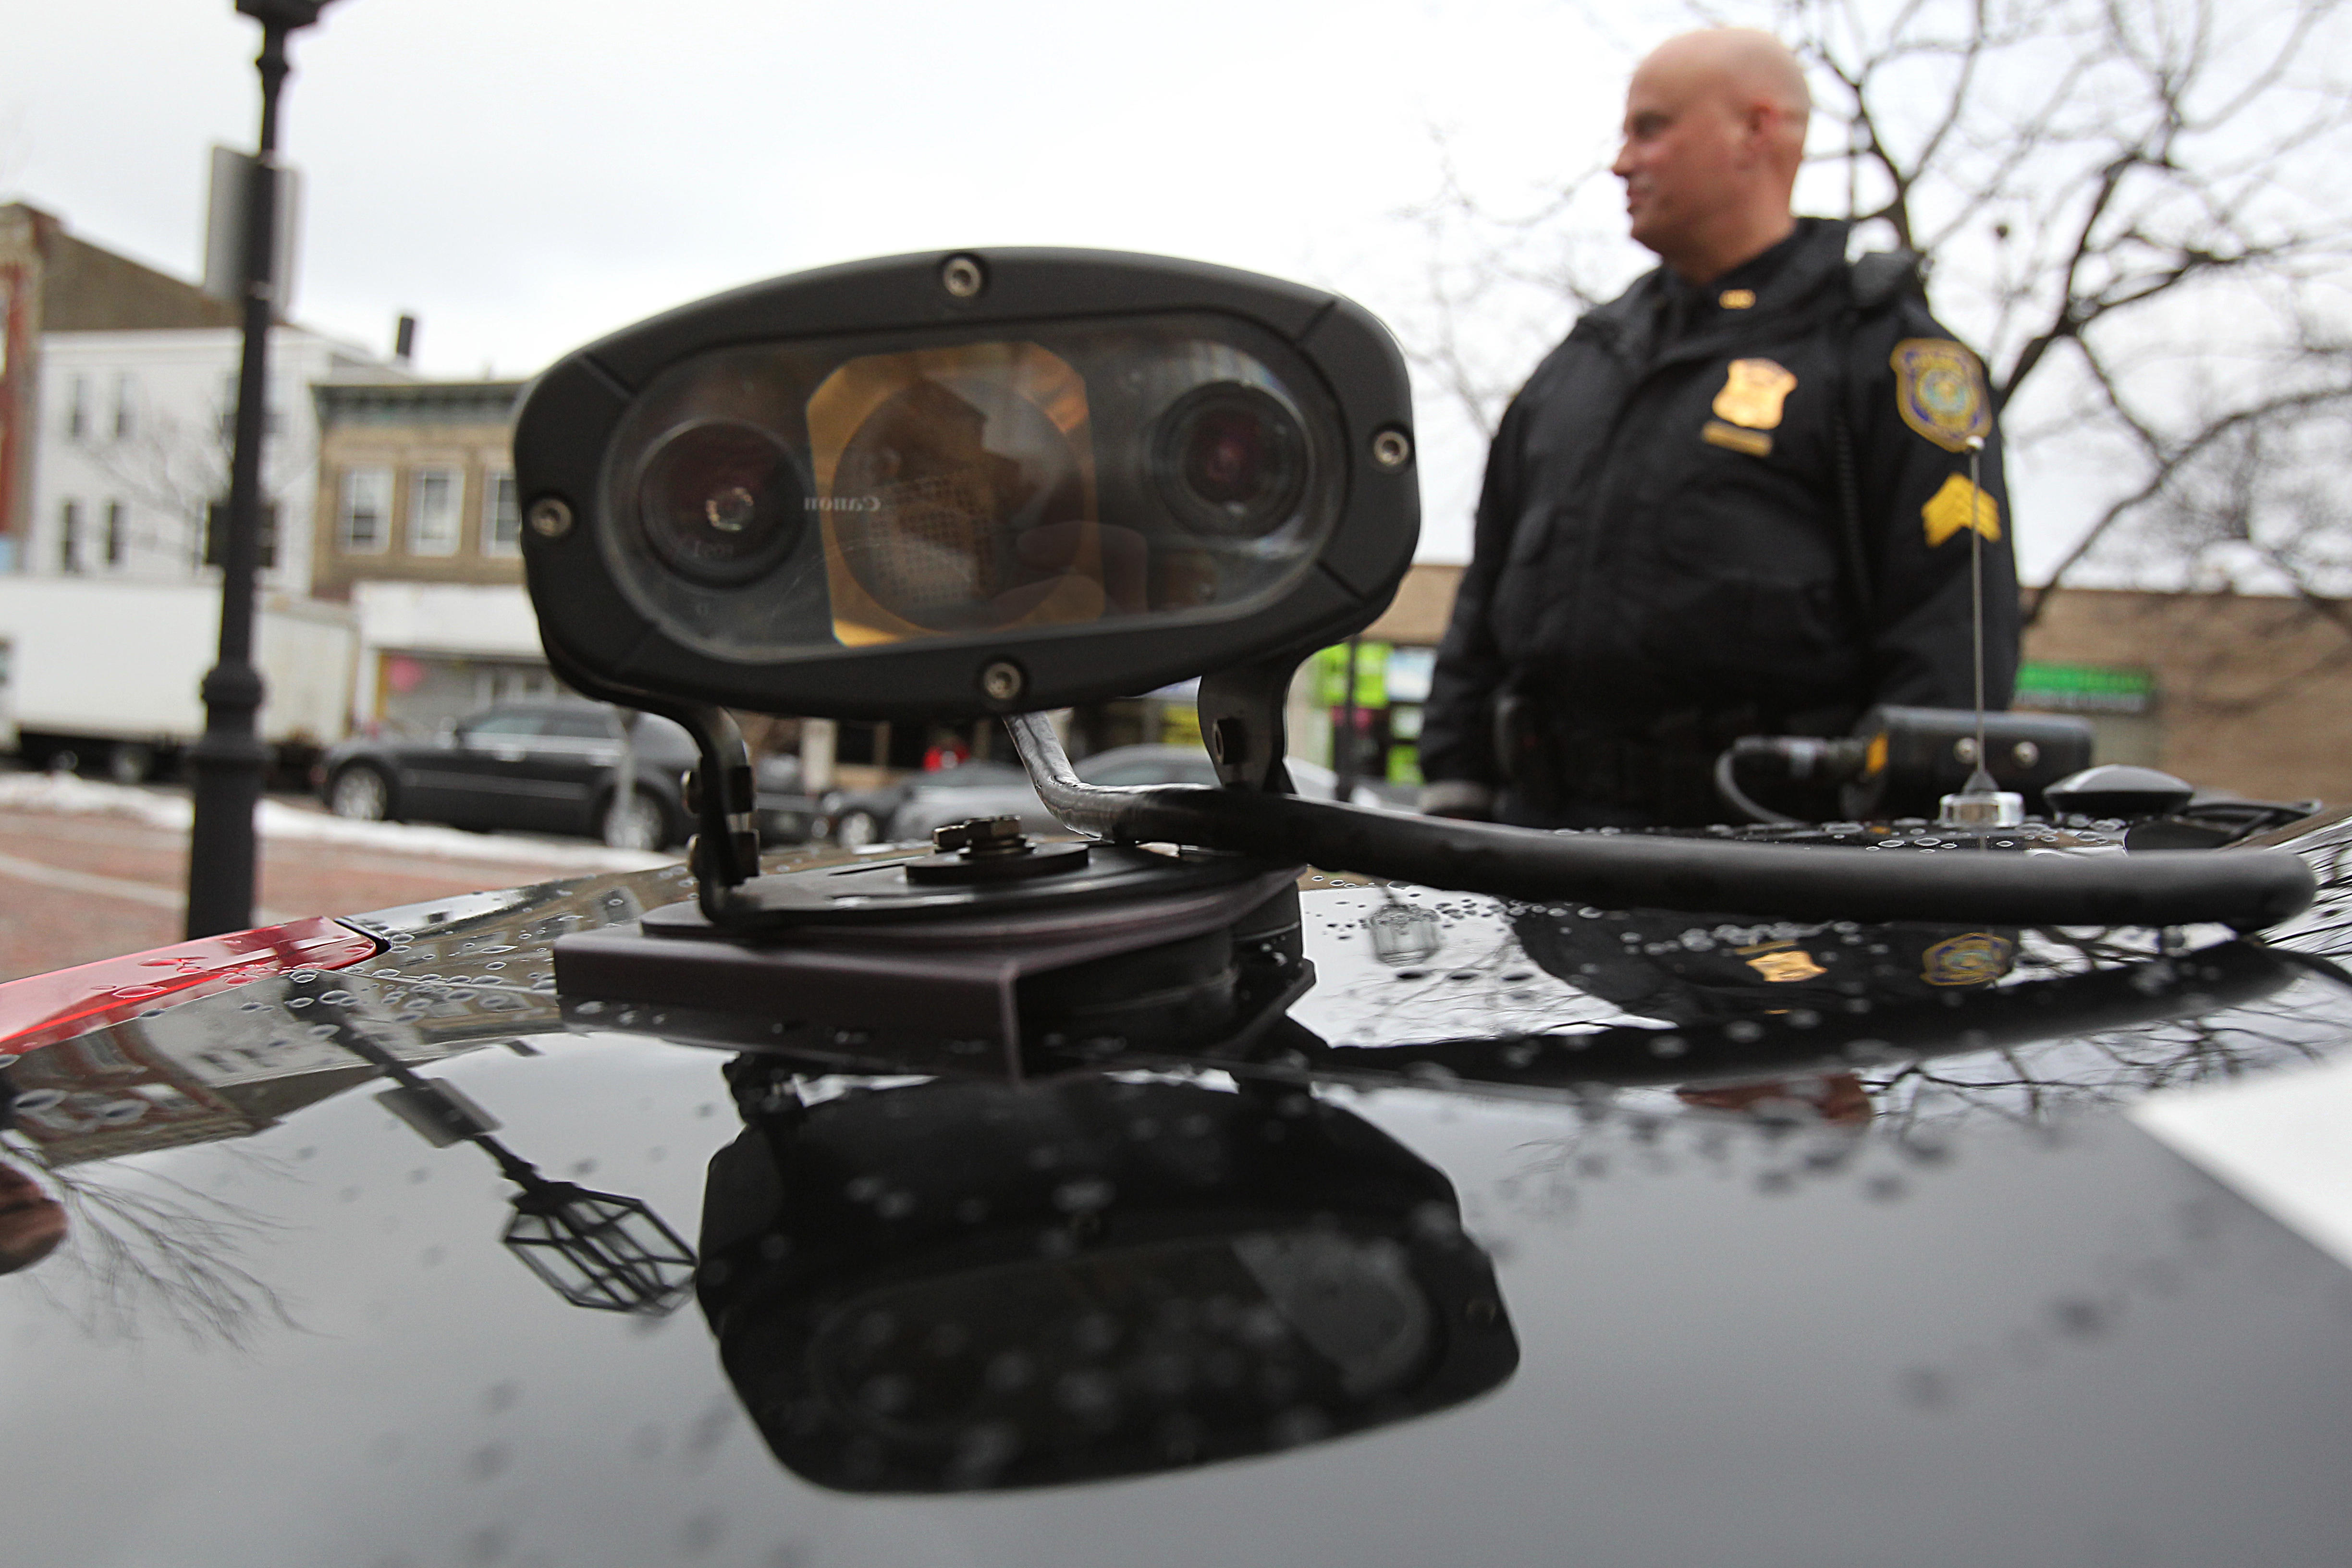 A police officer stands behind a cruiser that's mounted with an automated license plate reader.